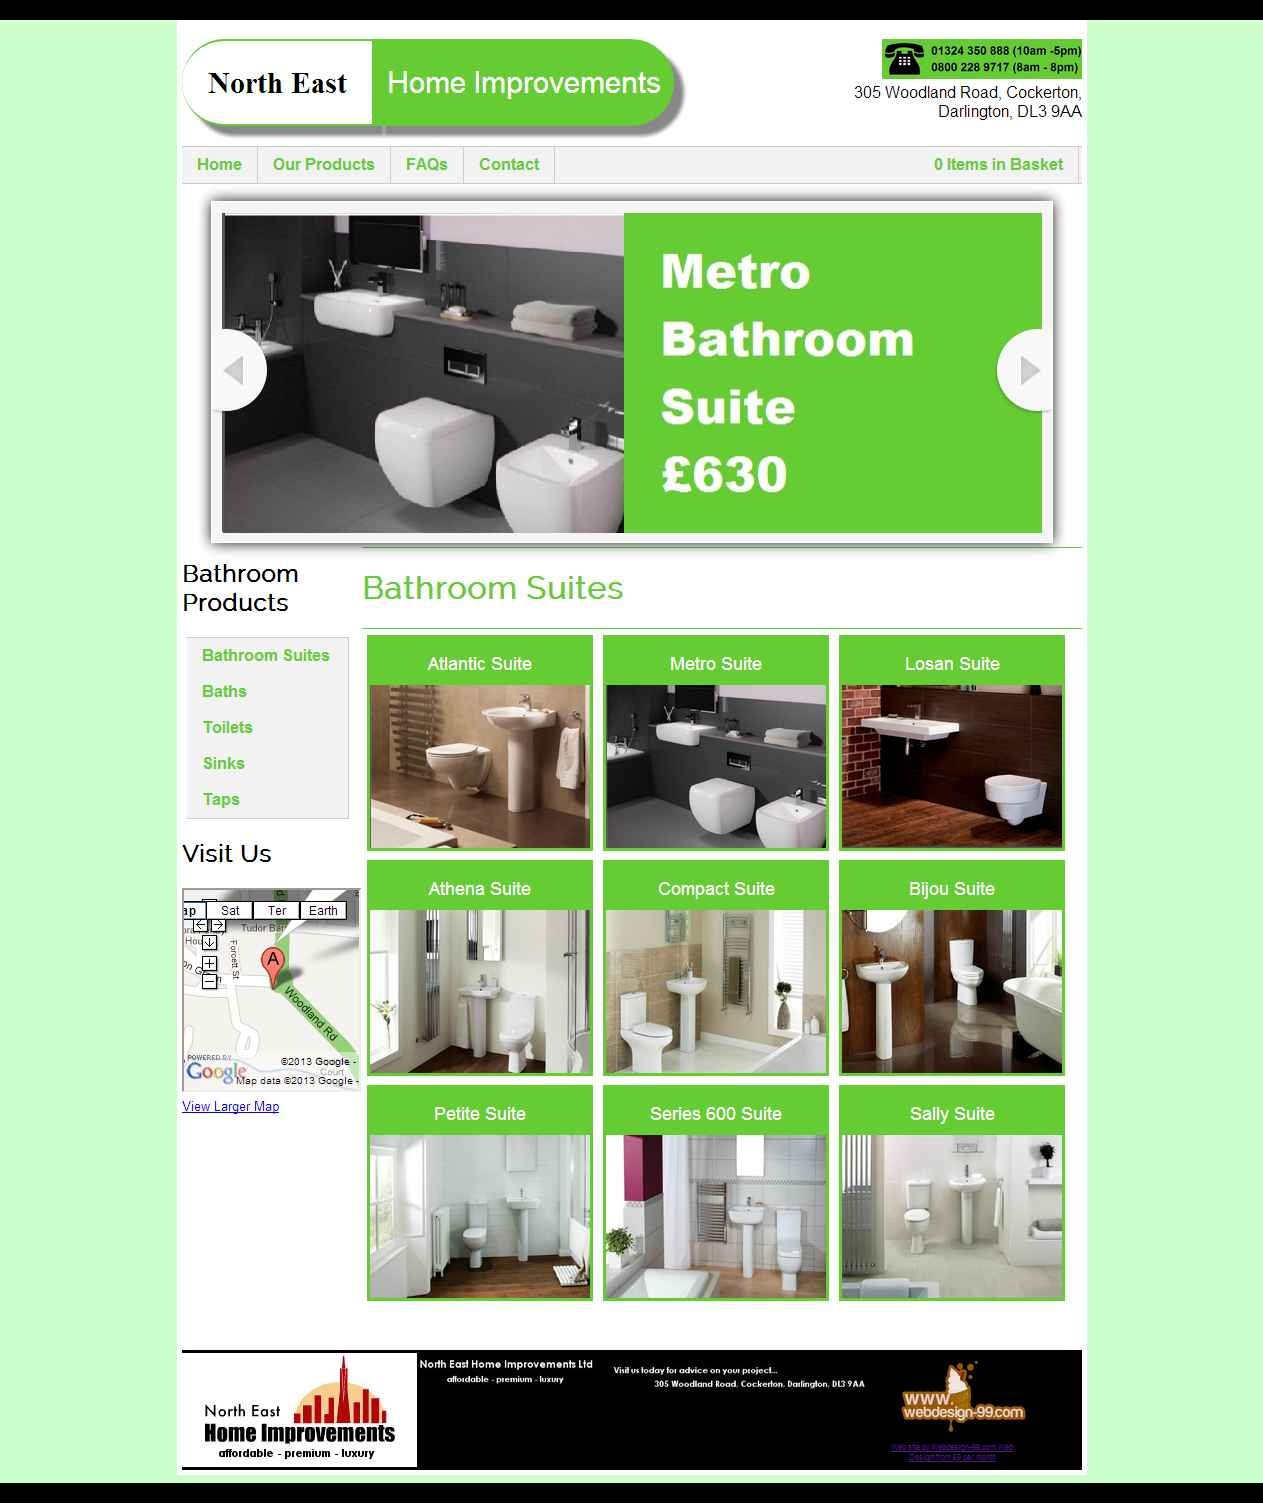 DIY Bathrooms web site built by Darlington Design